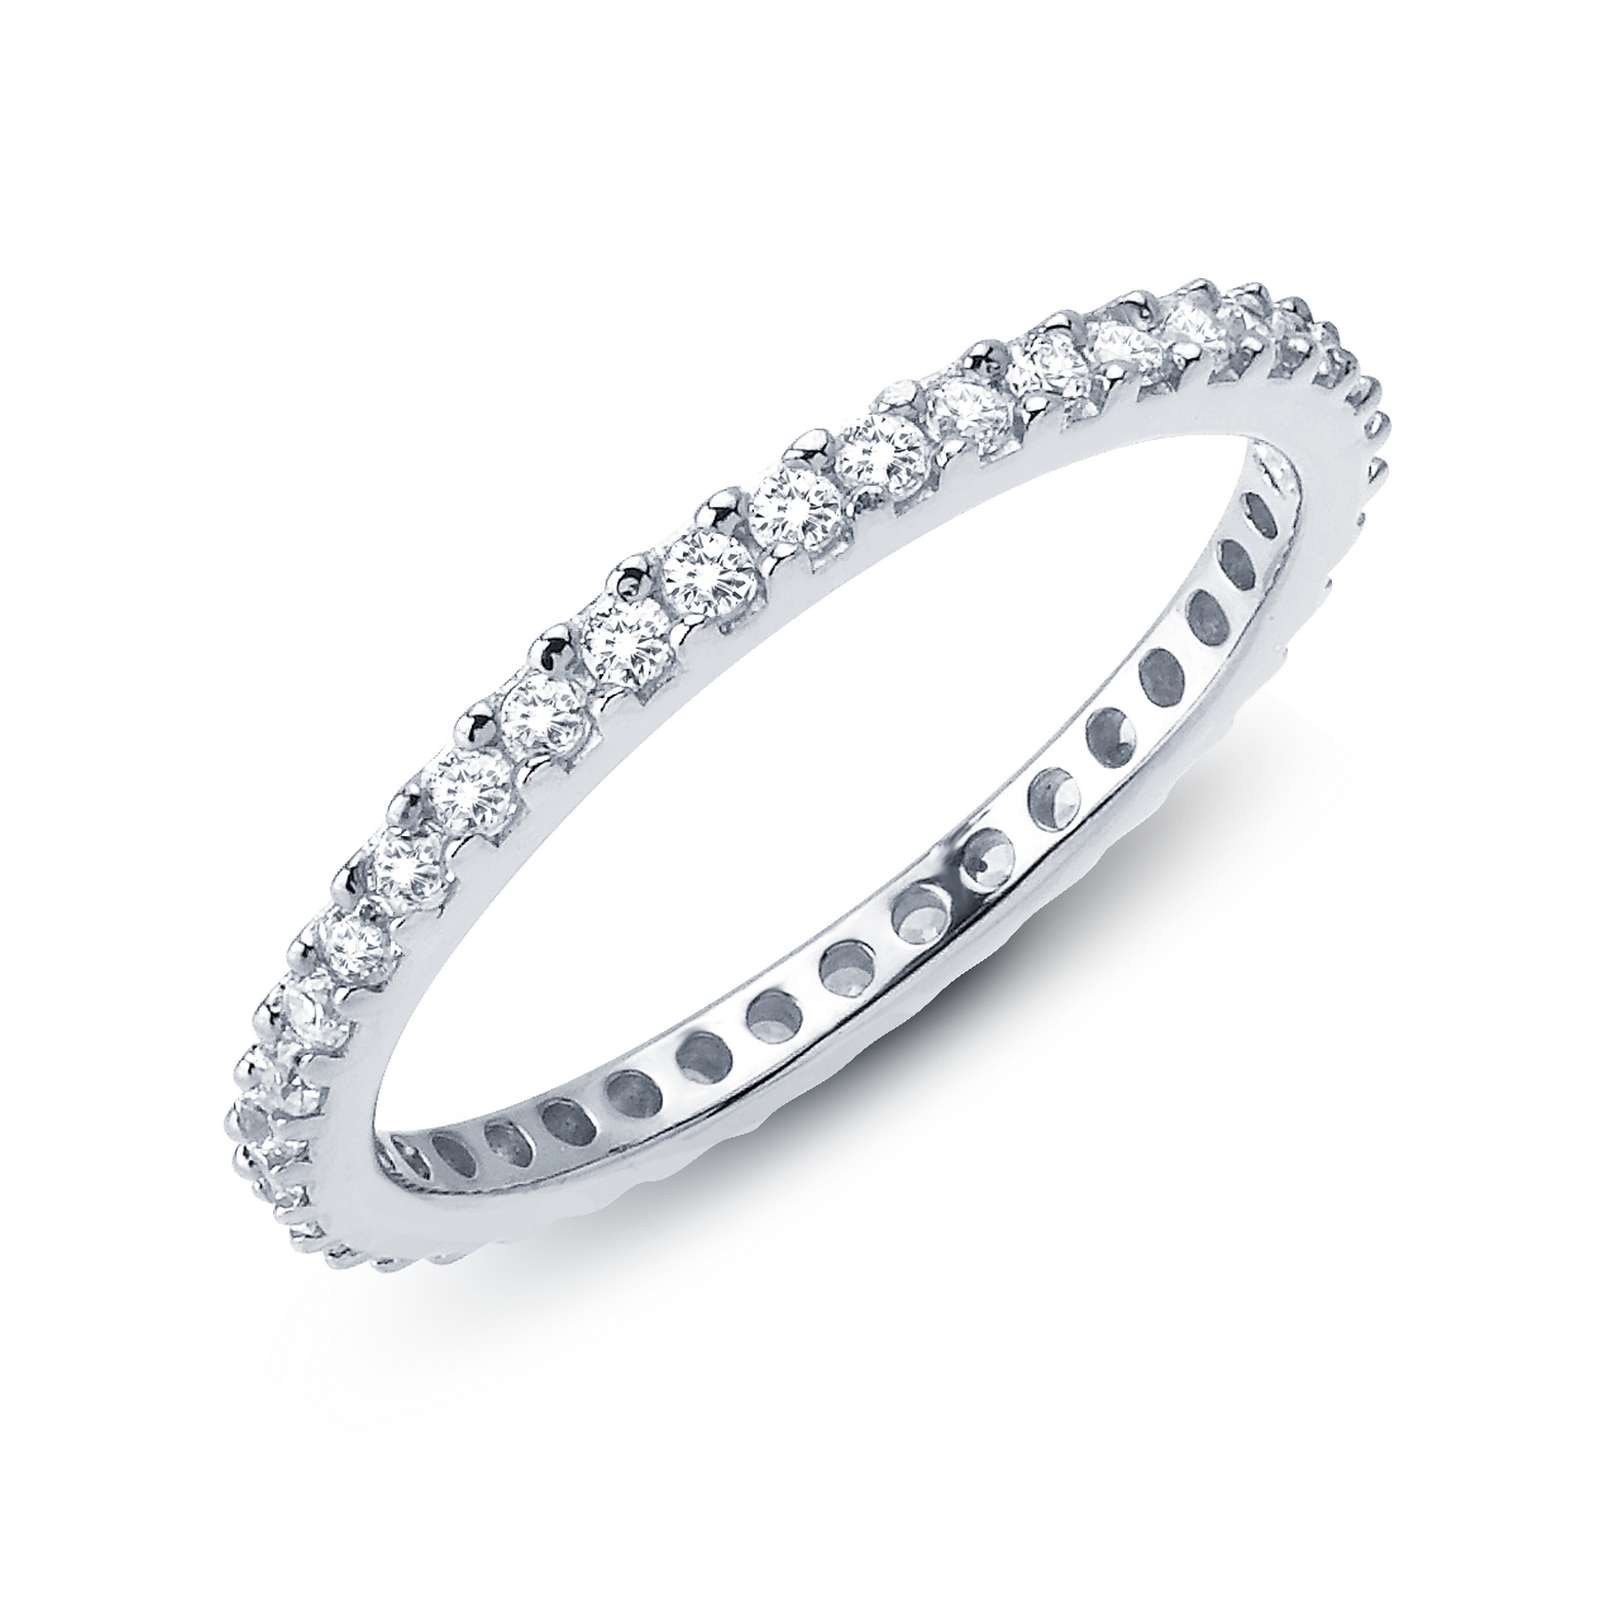 Stackables Simulated Diamond Platinum Ring - Timeless classics for everyday wear. Wear it by itself or stack with other rings. This eternity band is set with Lafonn's signature Lassaire simulated diamonds in sterling silver bonded with platinum.